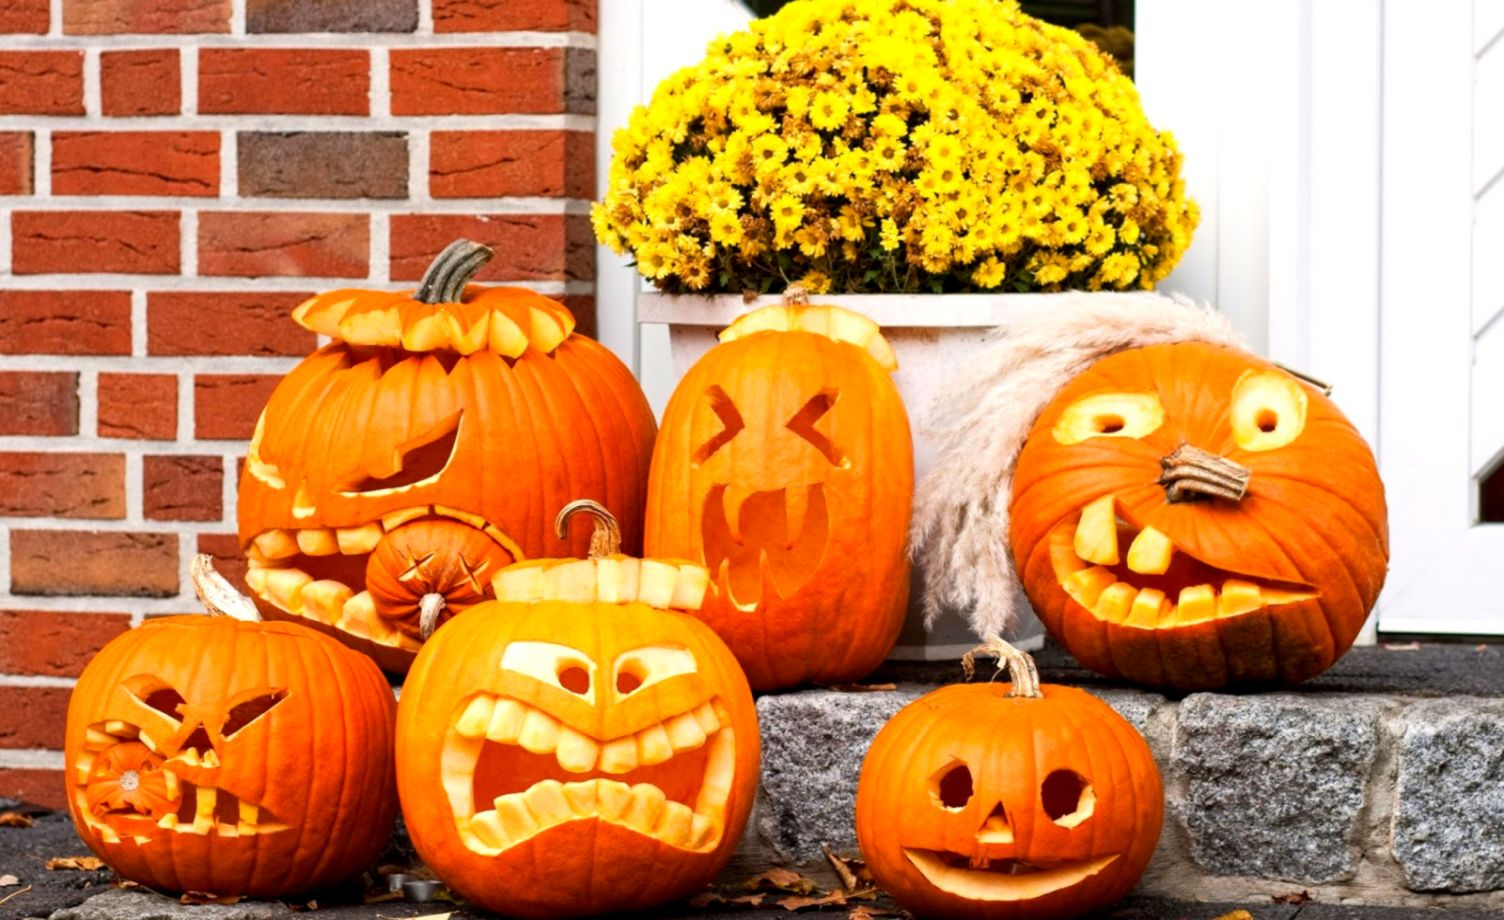 Funny Pumpkin Carving Wallpaper Halloween Wallpapers Awards